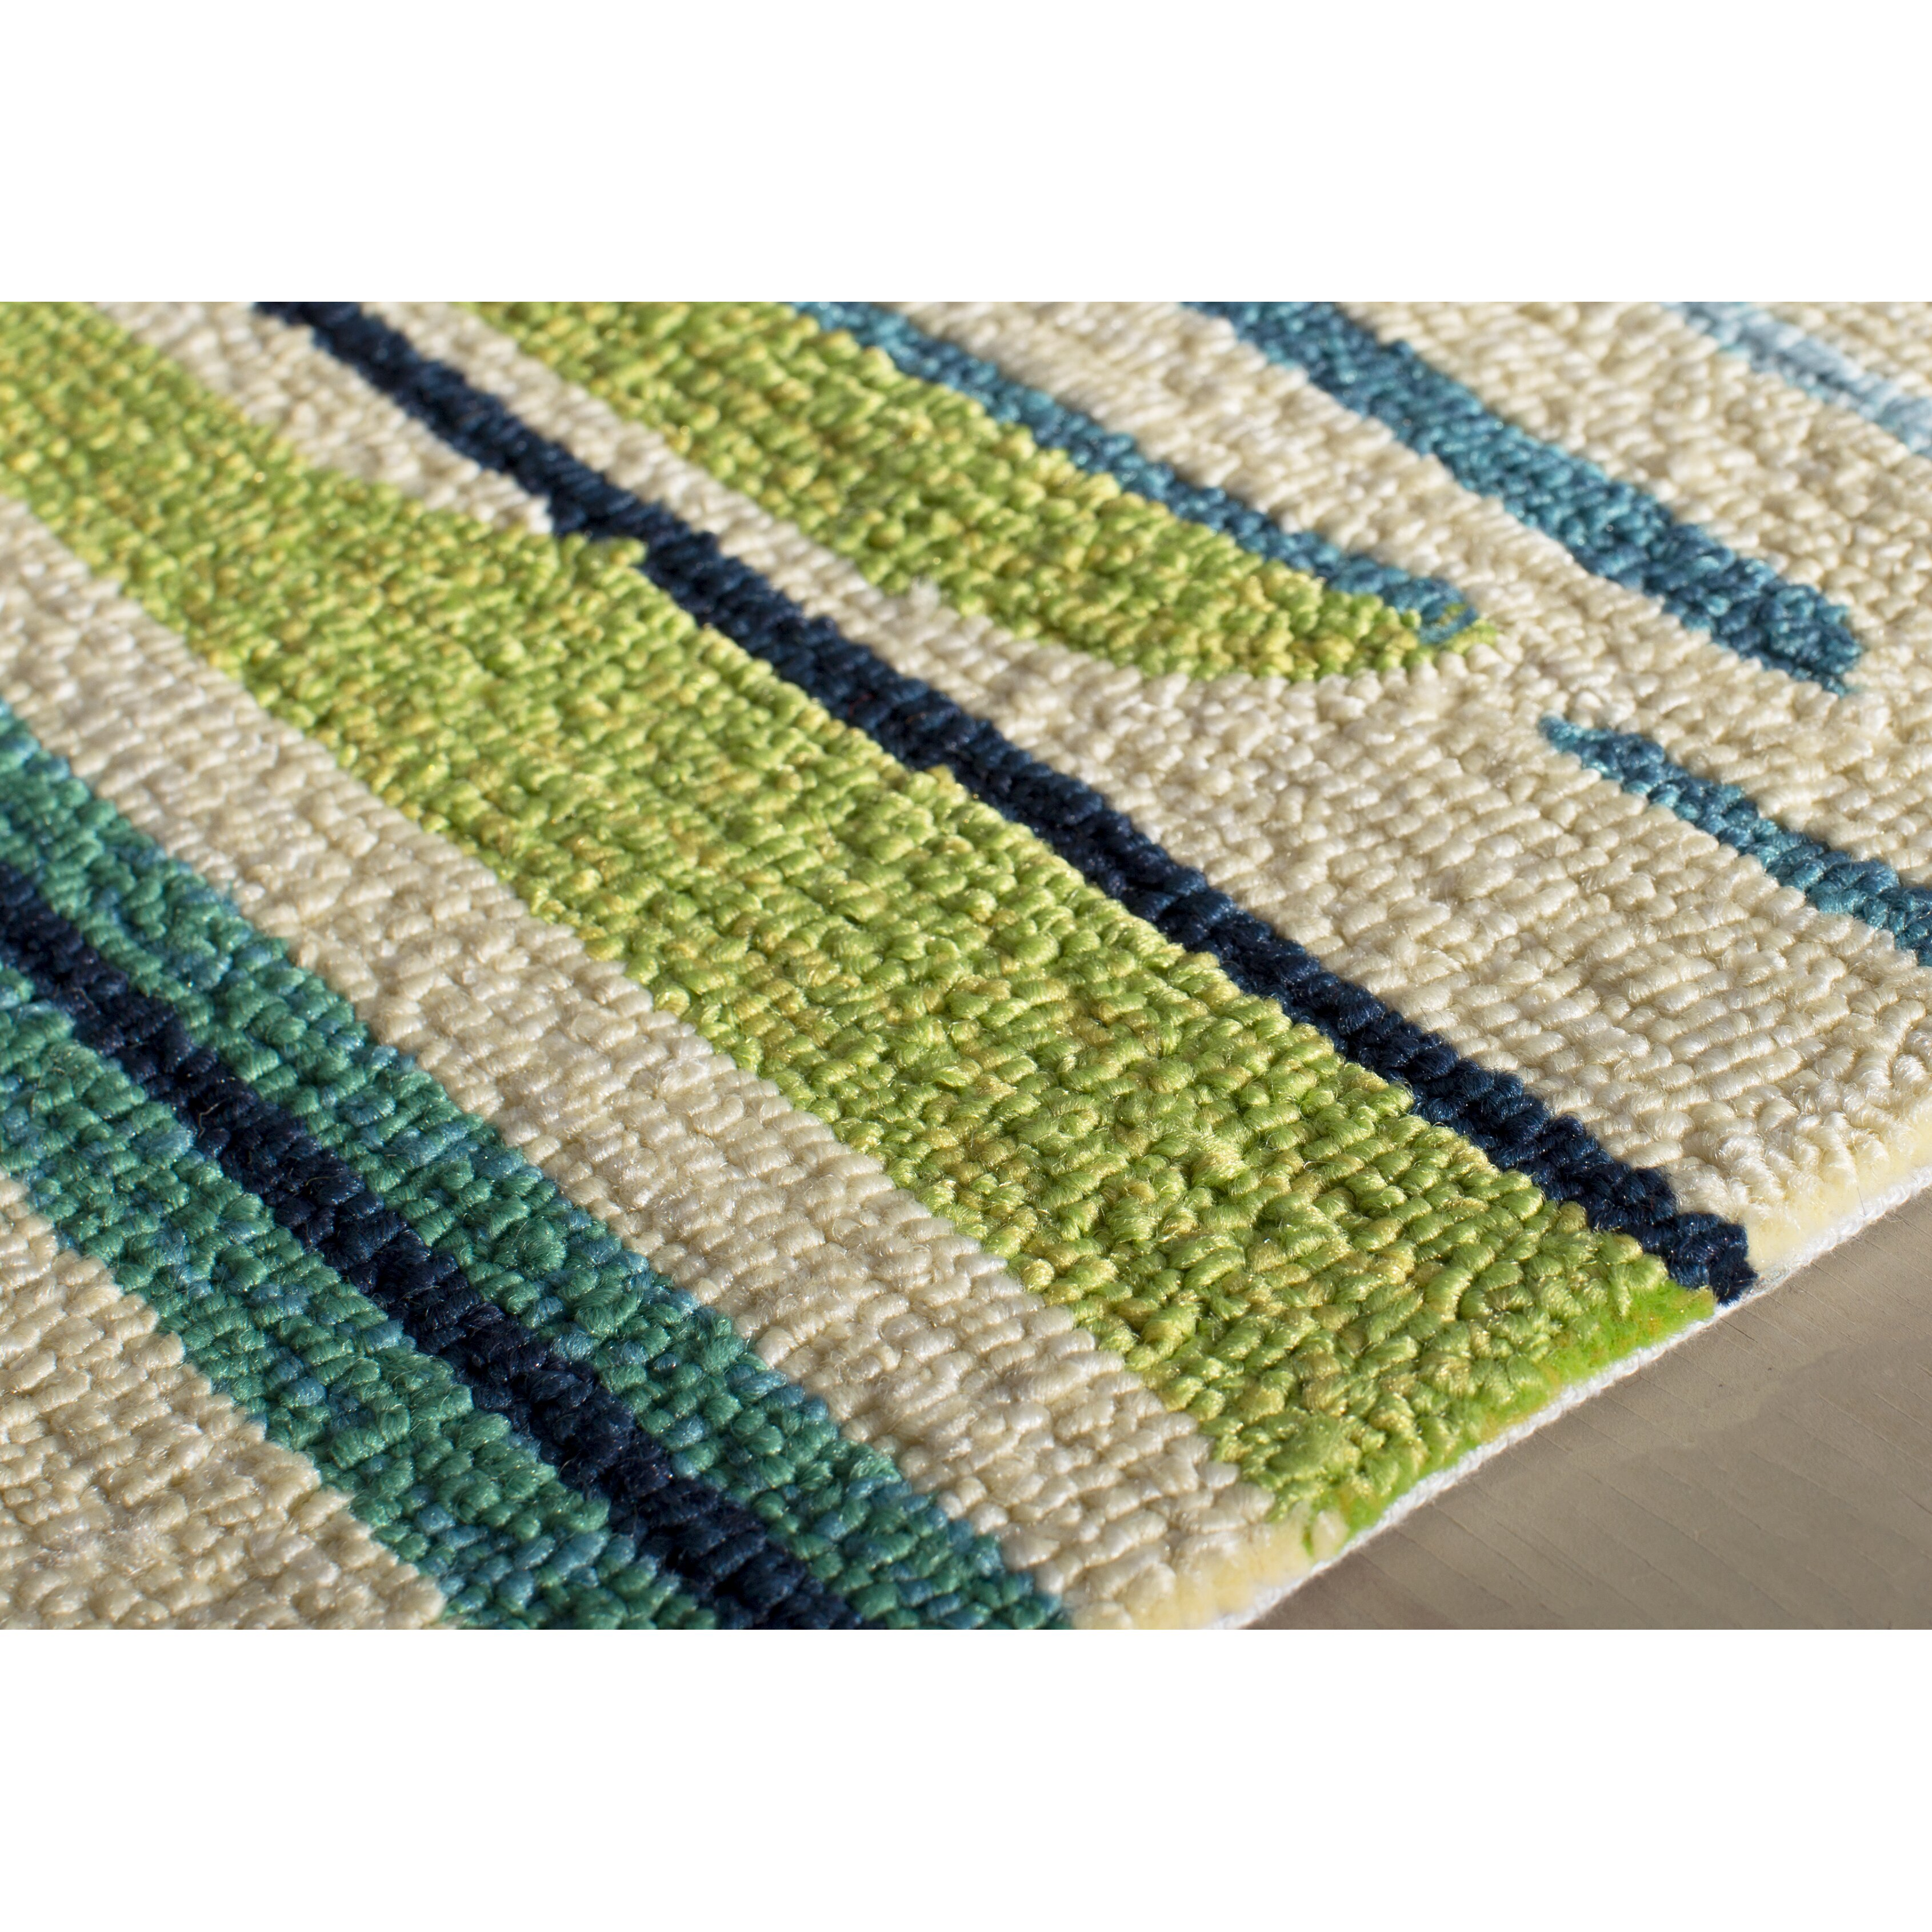 Dalton blue green indoor outdoor area rug reviews for Indoor outdoor carpet green